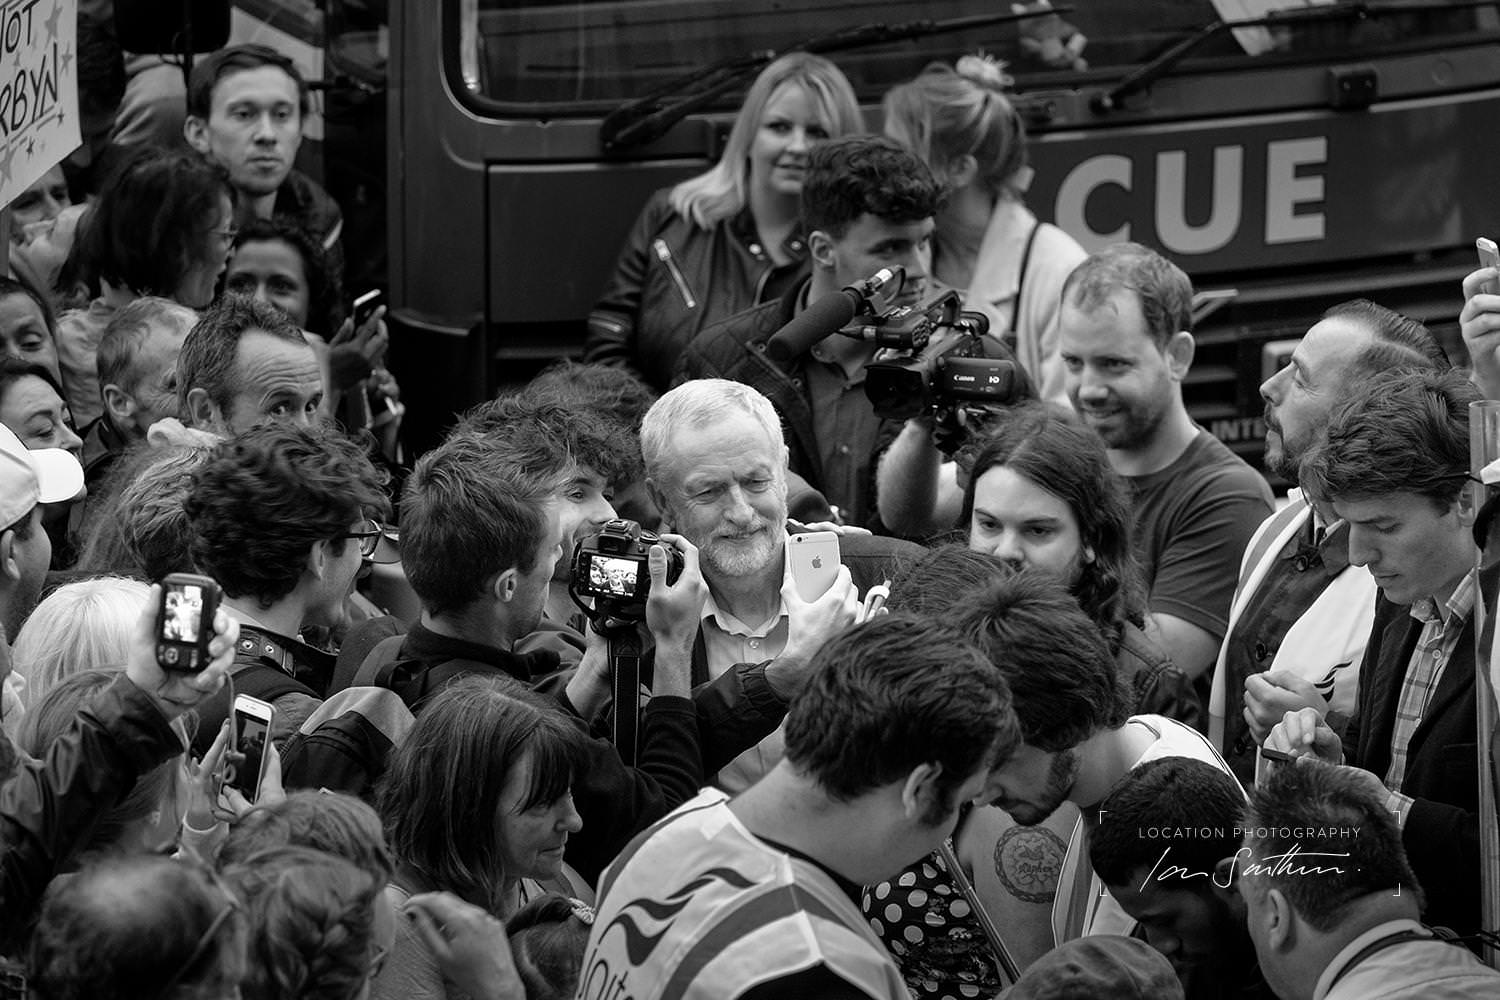 Crowd scene with Jeremy Corbyn, editorial photograph